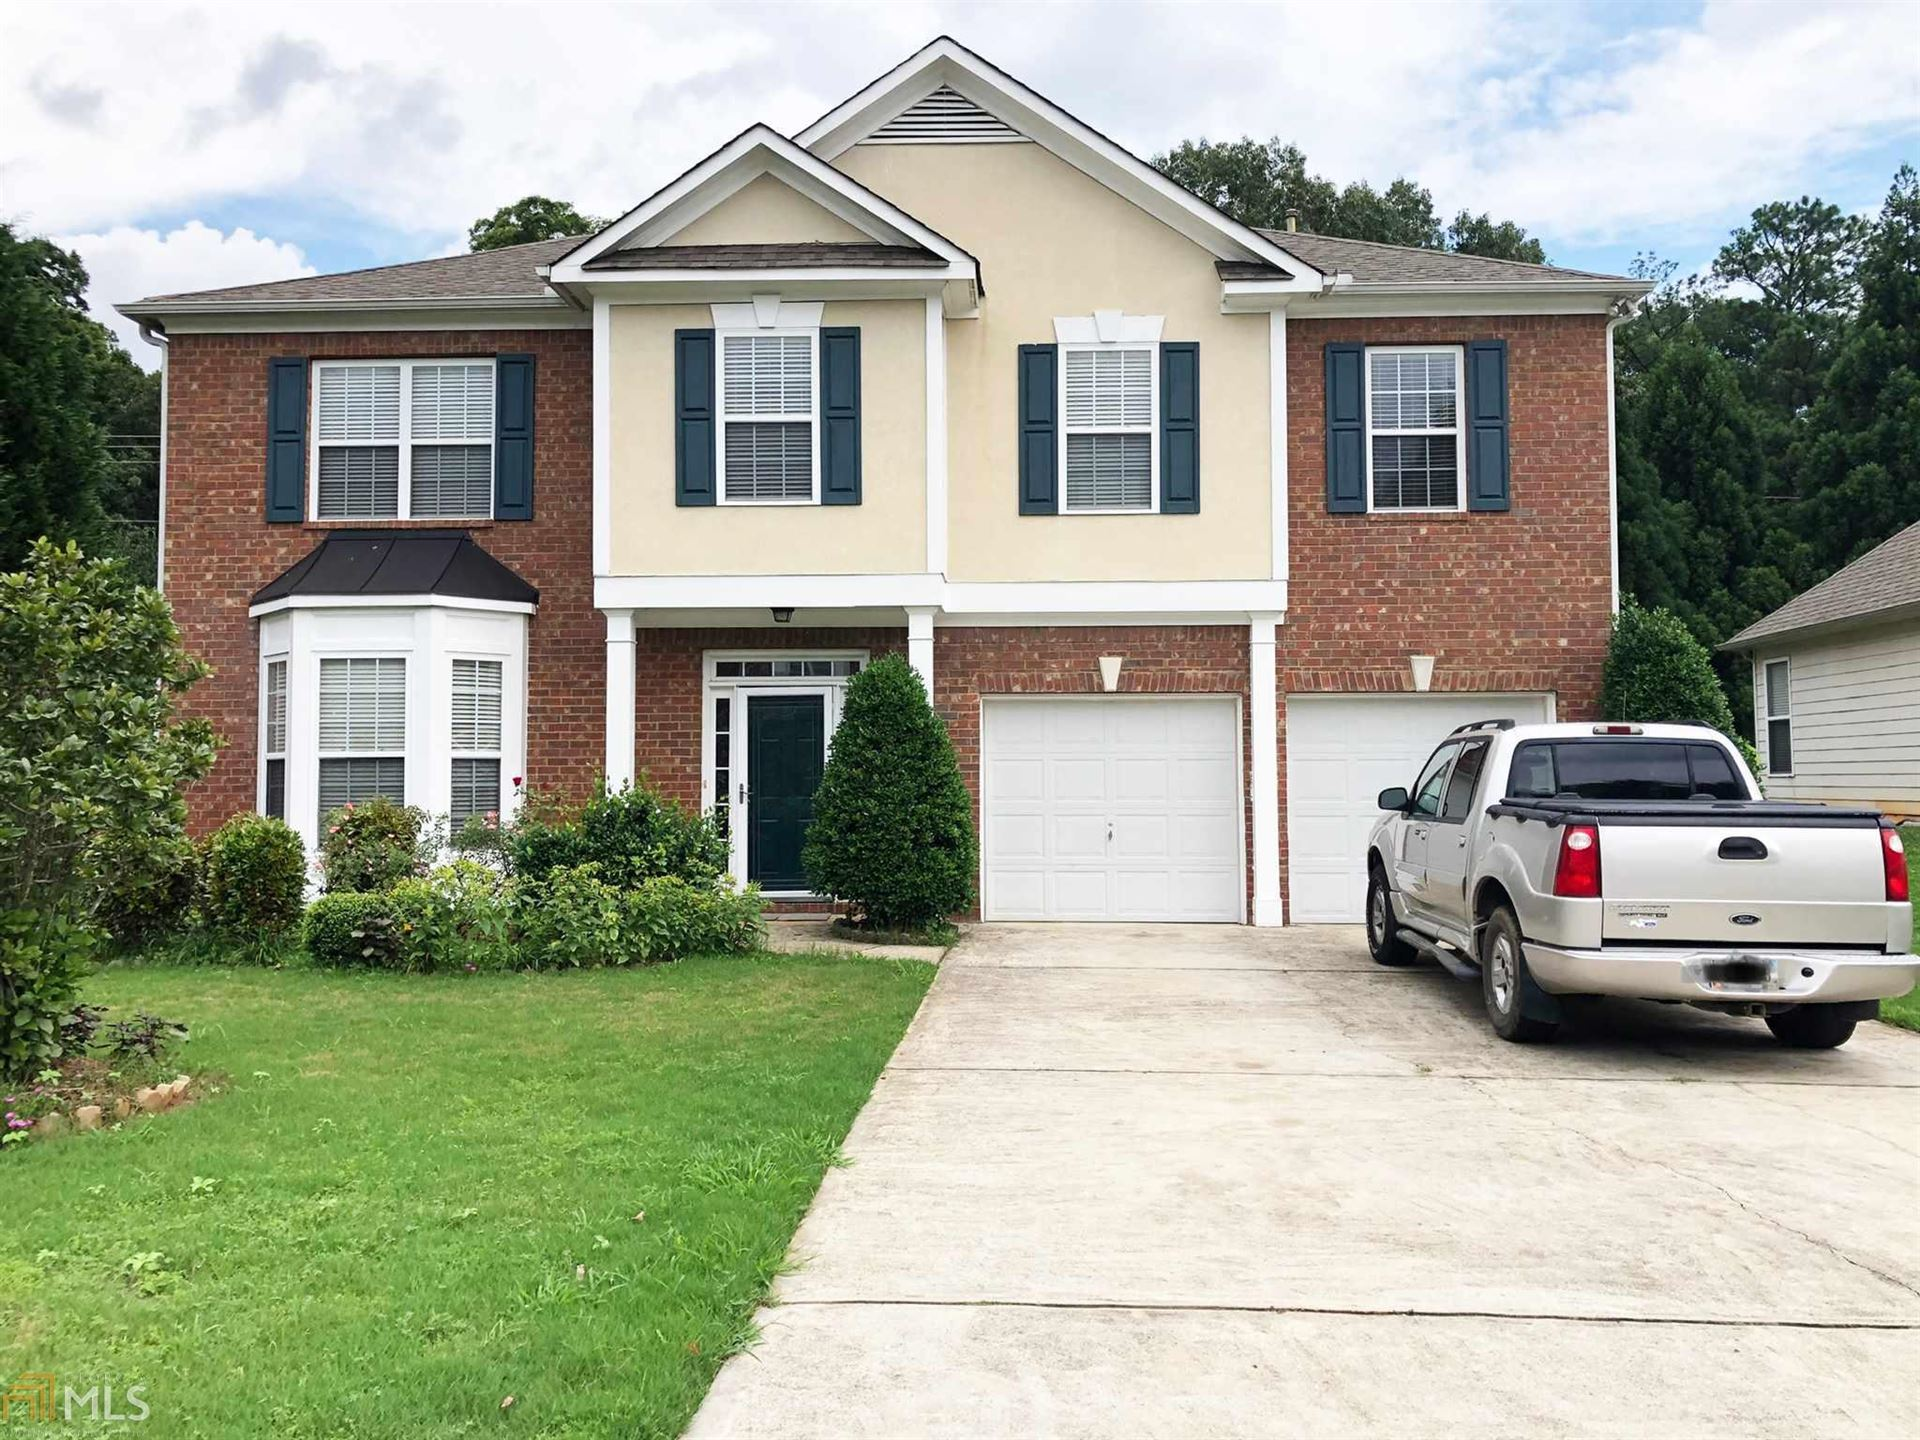 6042 Foxcroft Ct, Morrow, GA 30260 - #: 8816972